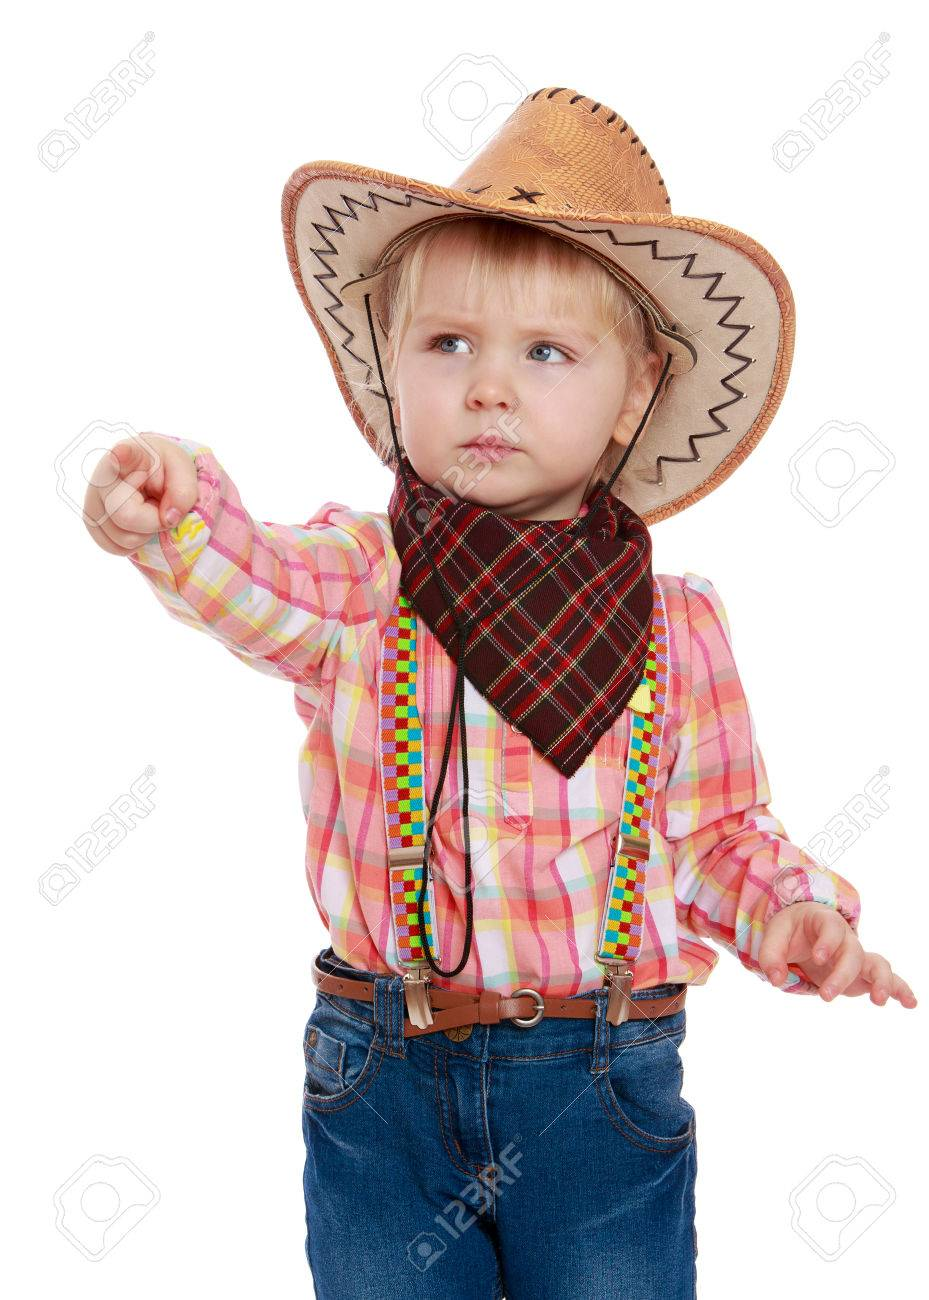 Stock Photo - The little blonde girl in a cowboy outfit. The girl shows a  finger to the side with a very serious face. A girl wearing a wide-brimmed  cowboy ... 2febd585e0b2